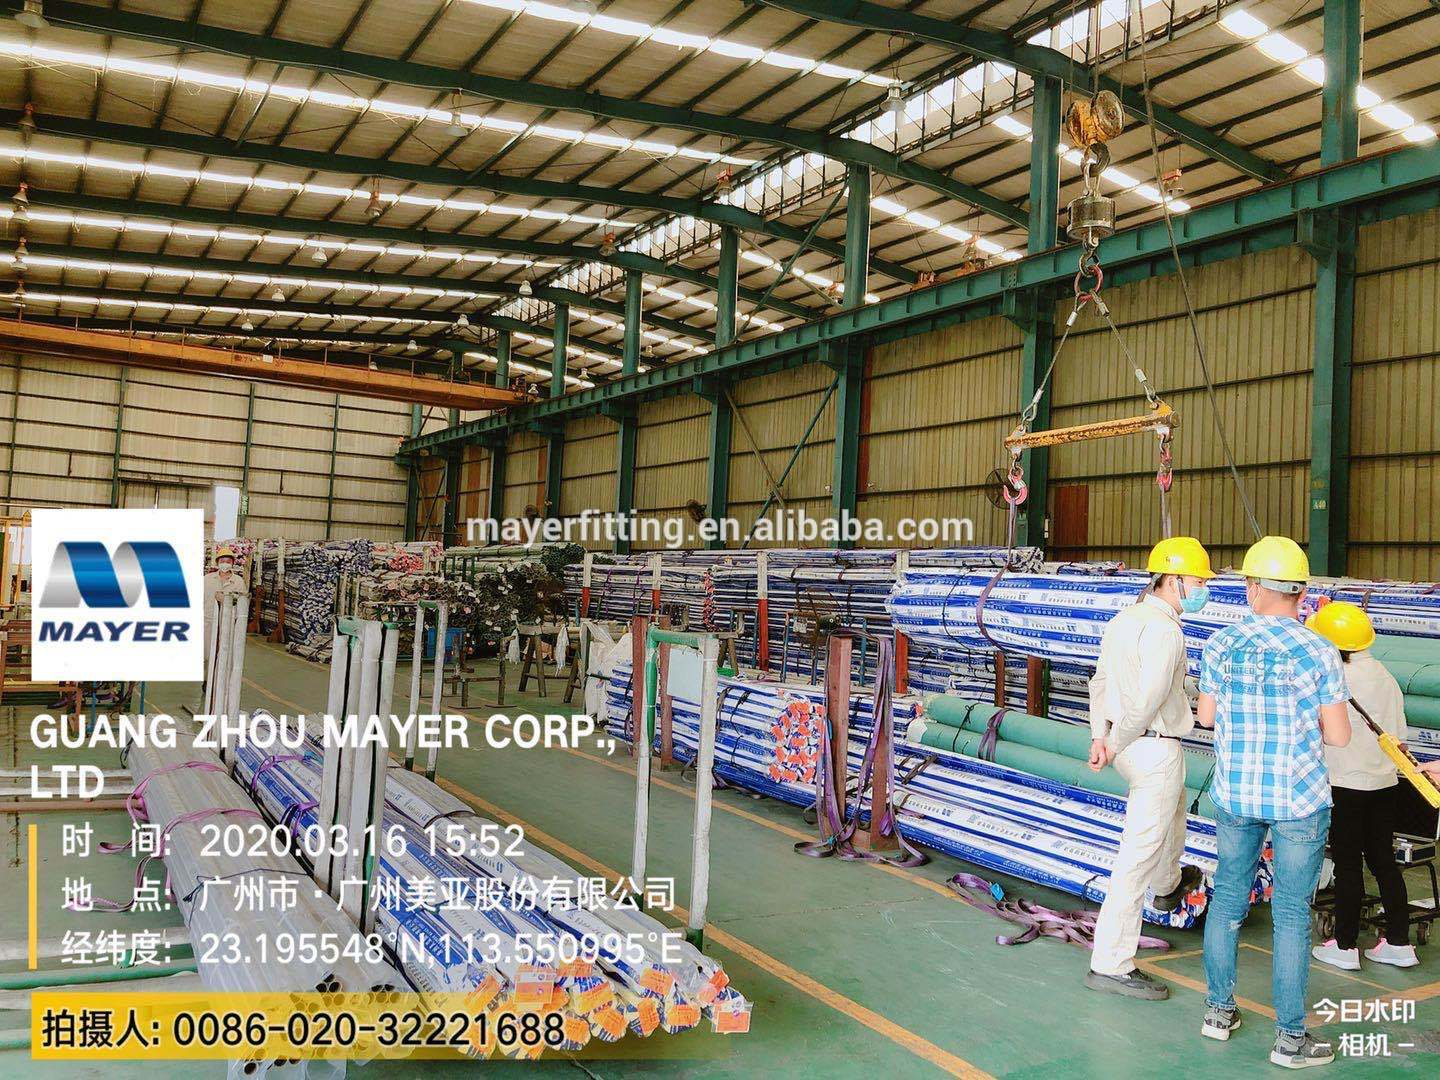 304/316L stainless steel press elbow fitting application on pipe connection M profile